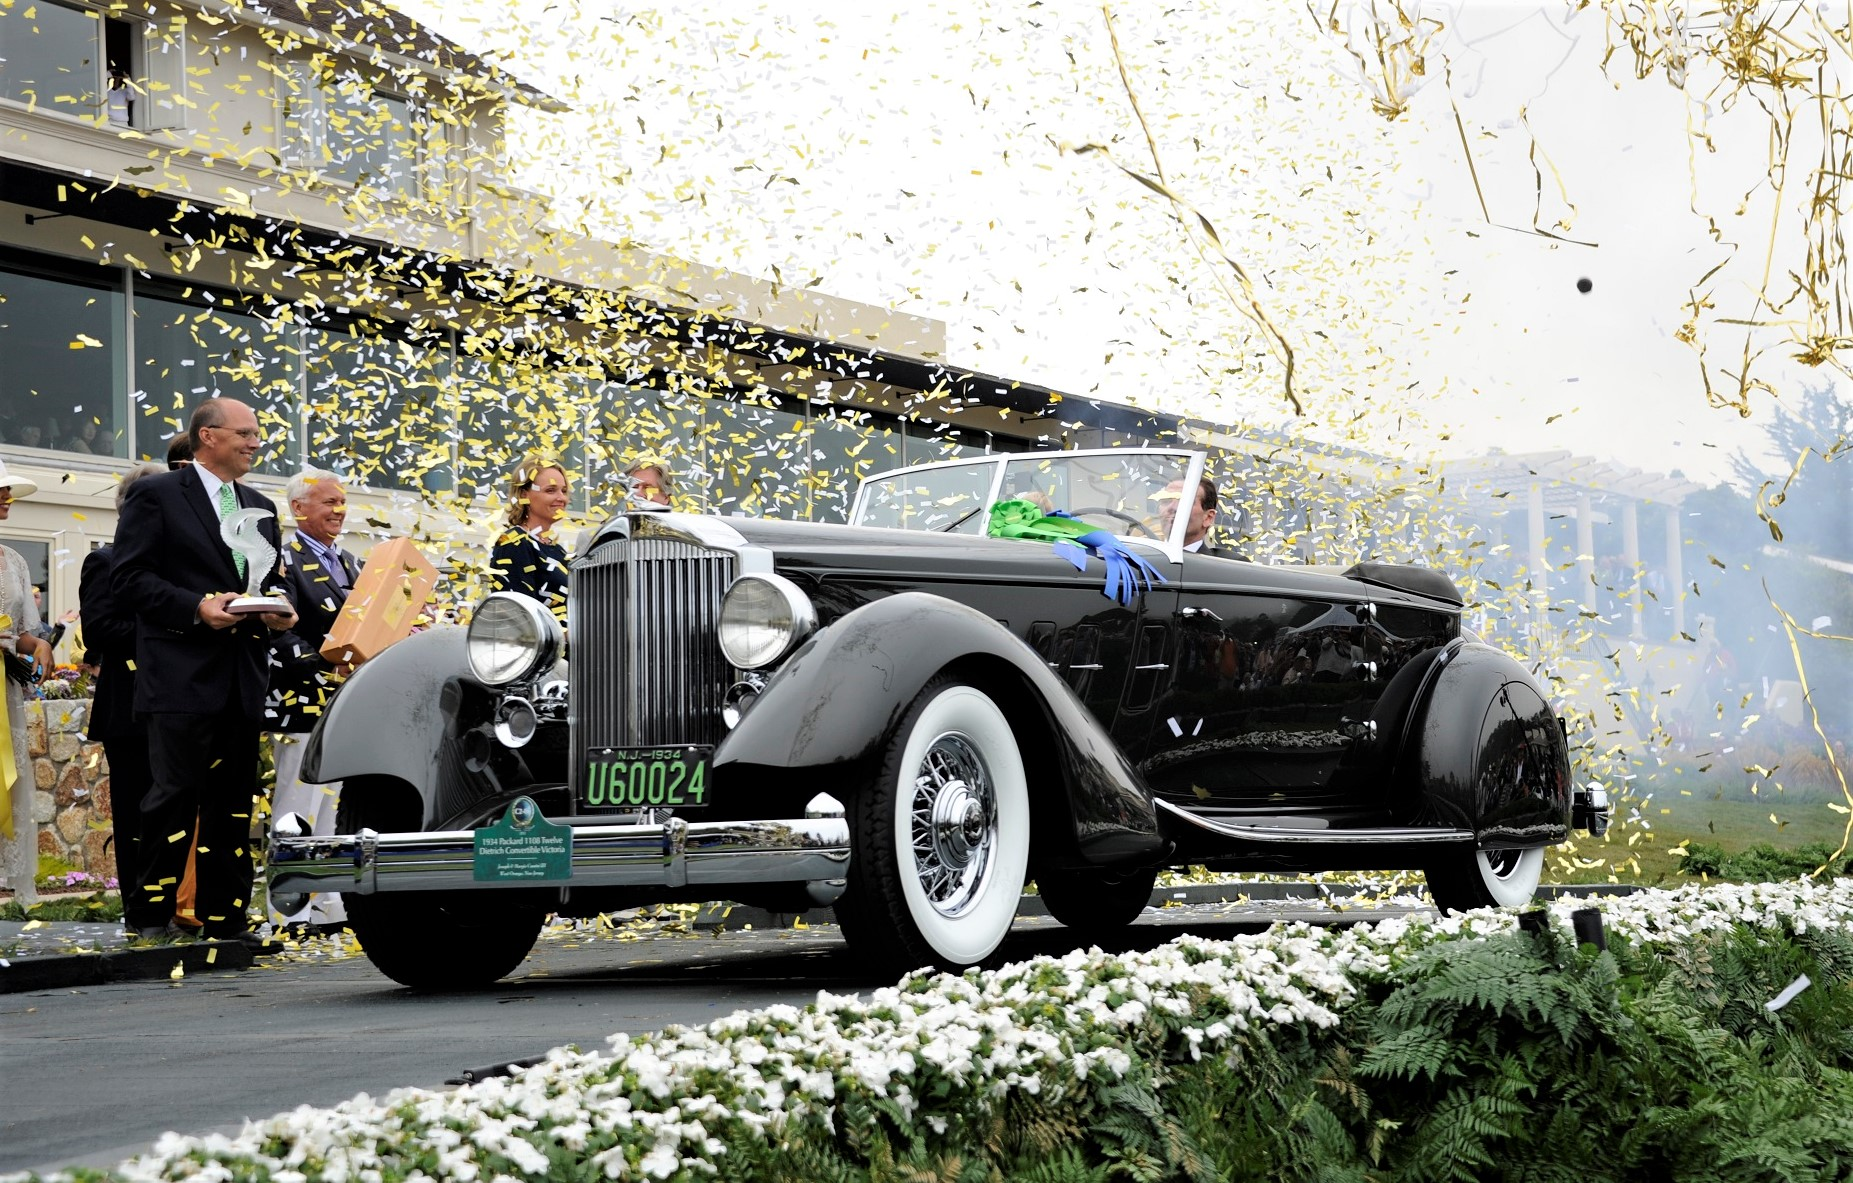 The Packard receiving its coveted Best of Show award at the Pebble Beach Concours